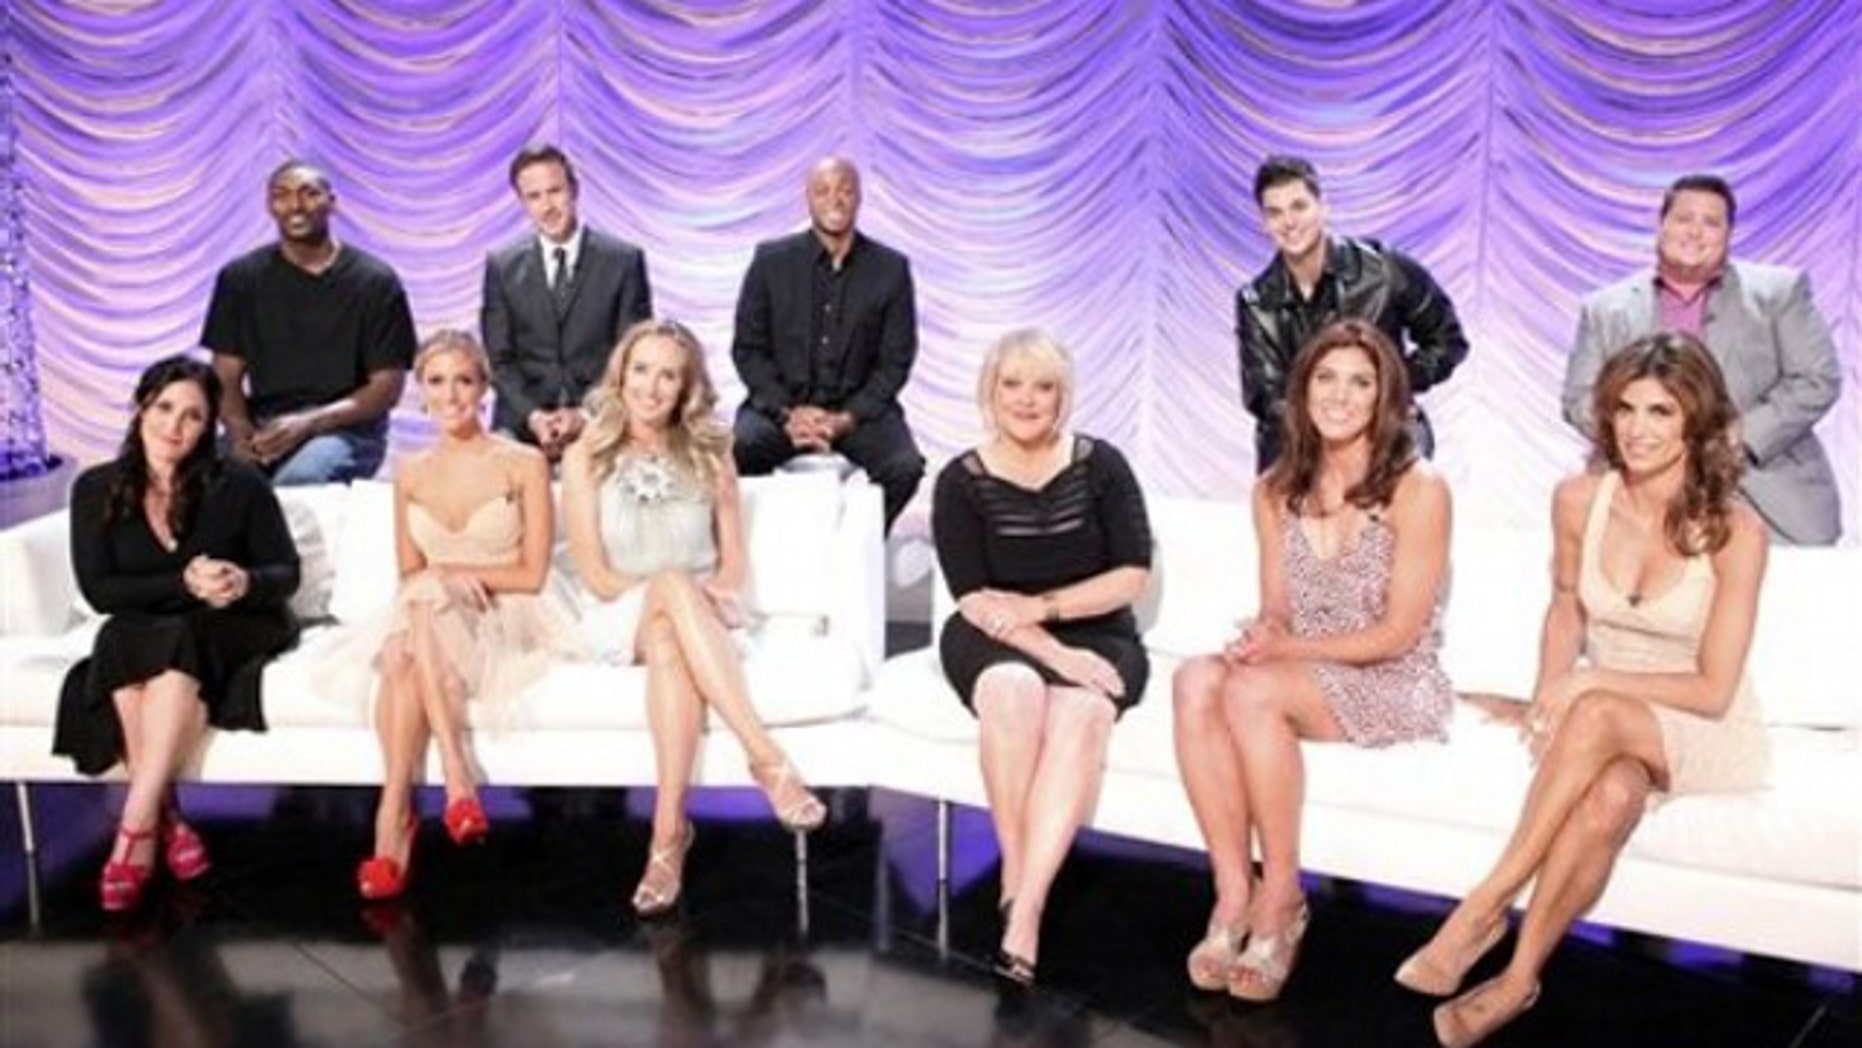 """In this image released by ABC, back row from left, NBA player Ron Artest, actor David Arquette, actor and Iraq War veteran J.R. Martinez, TV personality Rob Kardashian, activist Chaz Bono, seated from left, TV personalities Ricki Lake, Kristin Cavallari, singer Chynna Phillips, TV host Nancy Grace, Soccer player Hope Solo and Italian personality Elisabetta Canalis, the celebrity cast for the upcoming dance competition series, """"Dancing with the Stars,"""" pose for a portrait in Los Angeles. The series will premiere on Monday, Sept. 19, 2011 on ABC."""